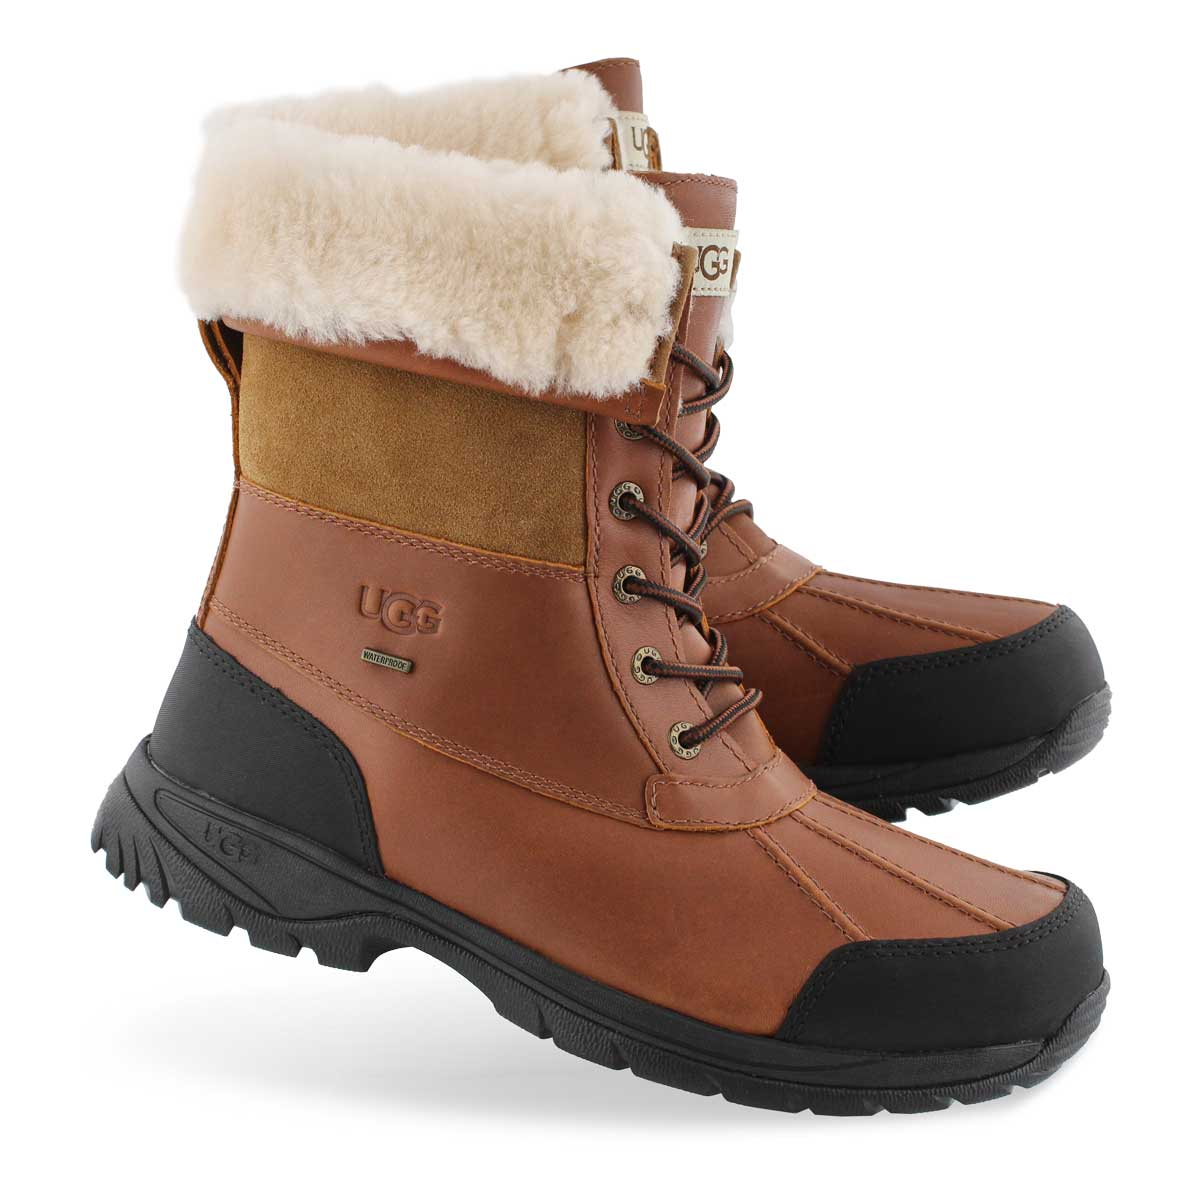 Mns Butte worchester sheepskin boot